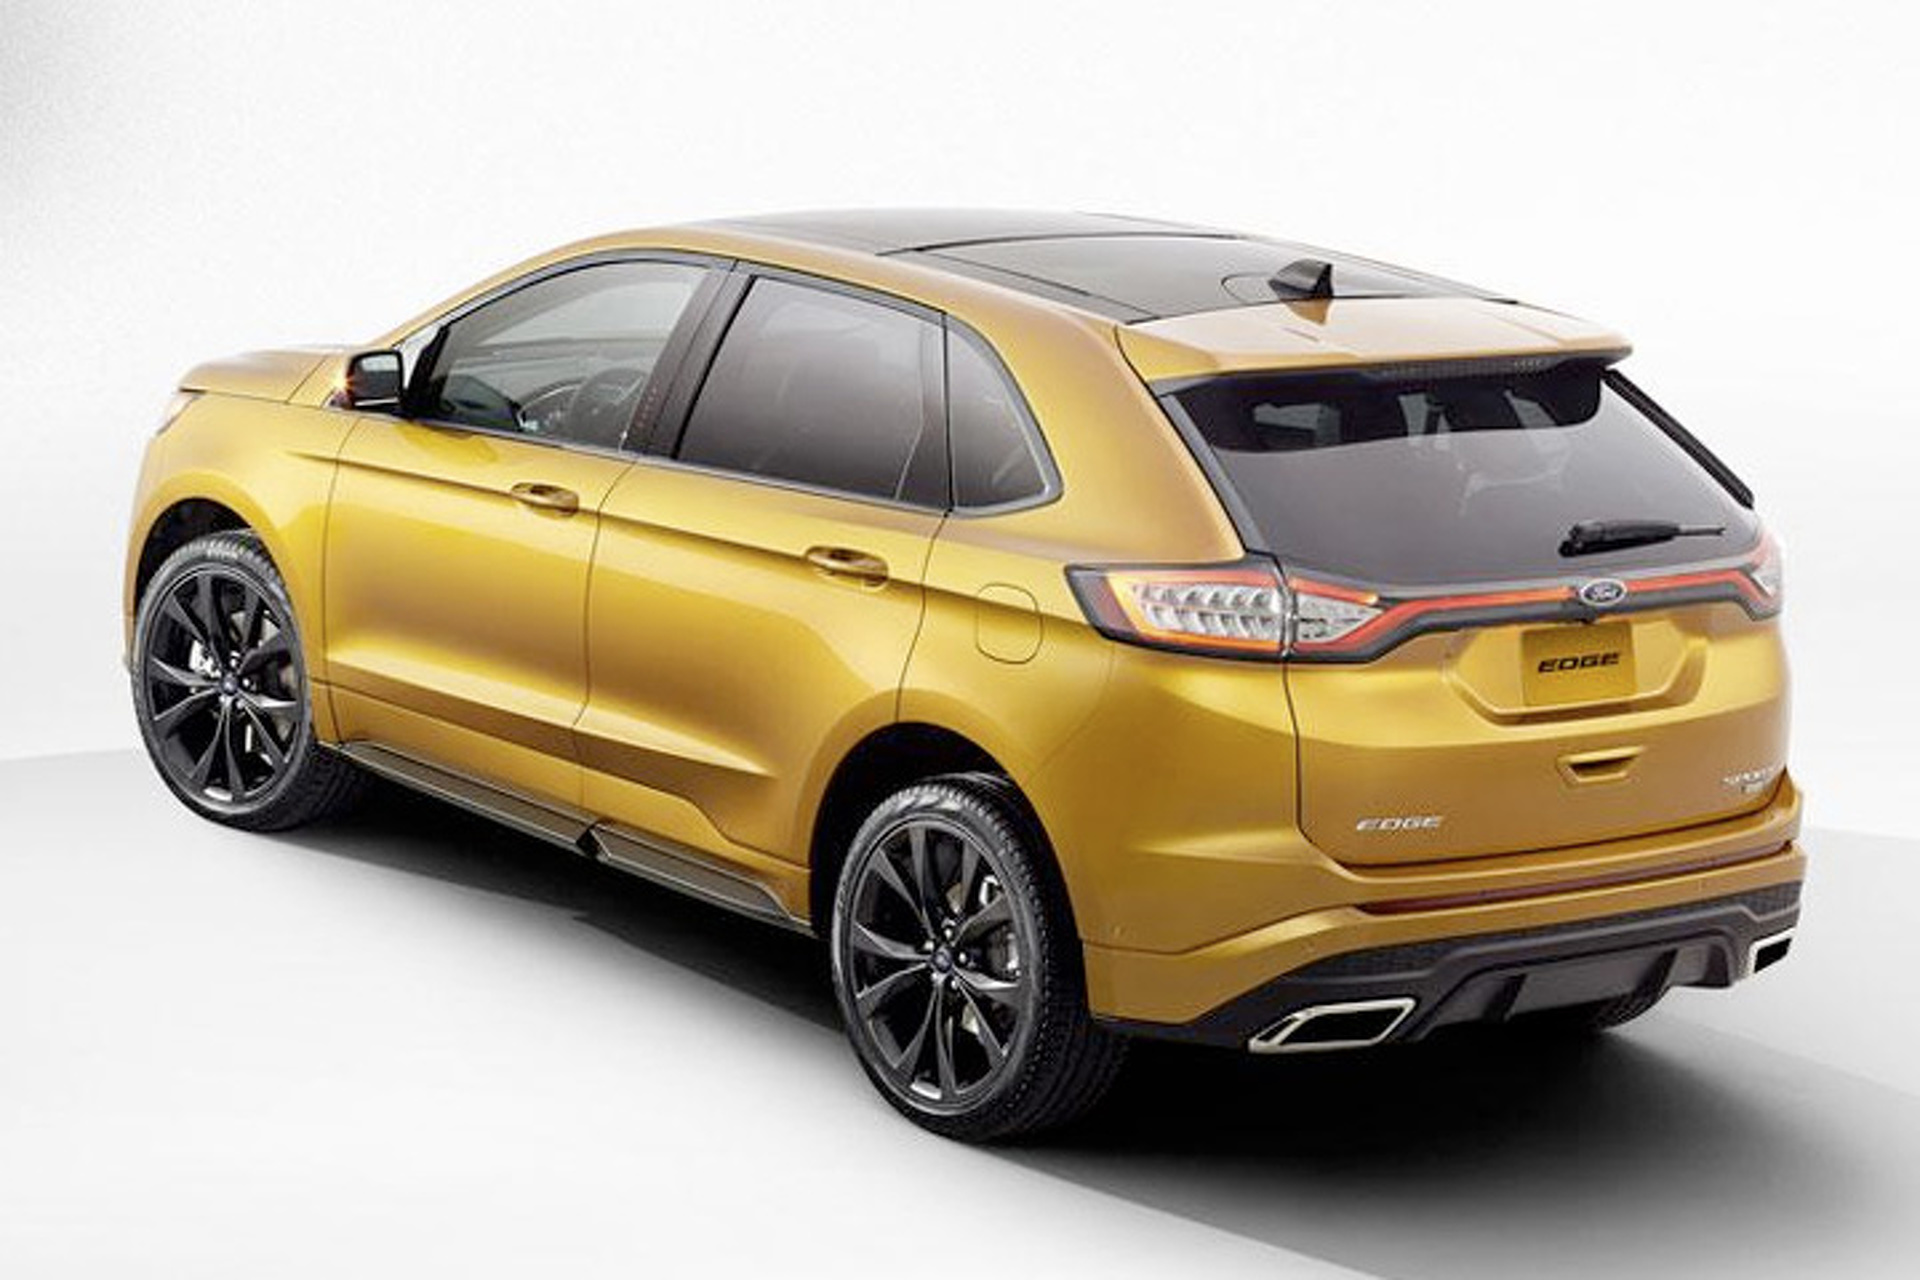 The 2015 Ford Edge is Going Global